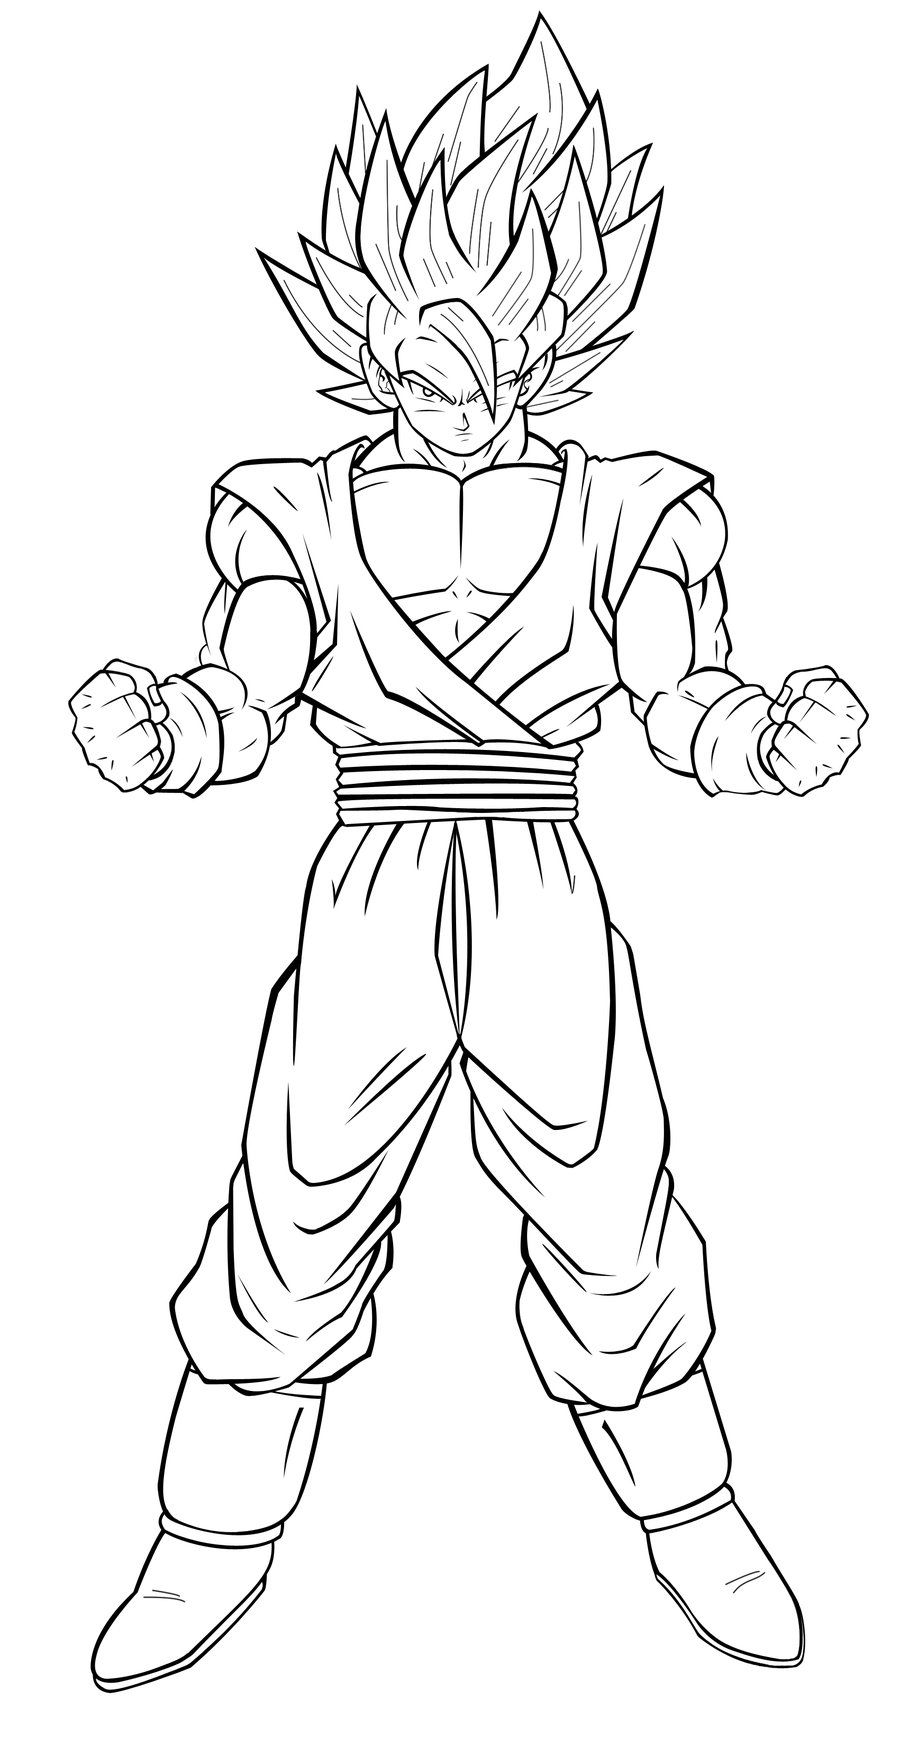 goku super saiyan 4 coloring pages images | isaiah birthday ... - Super Saiyan Goku Coloring Pages